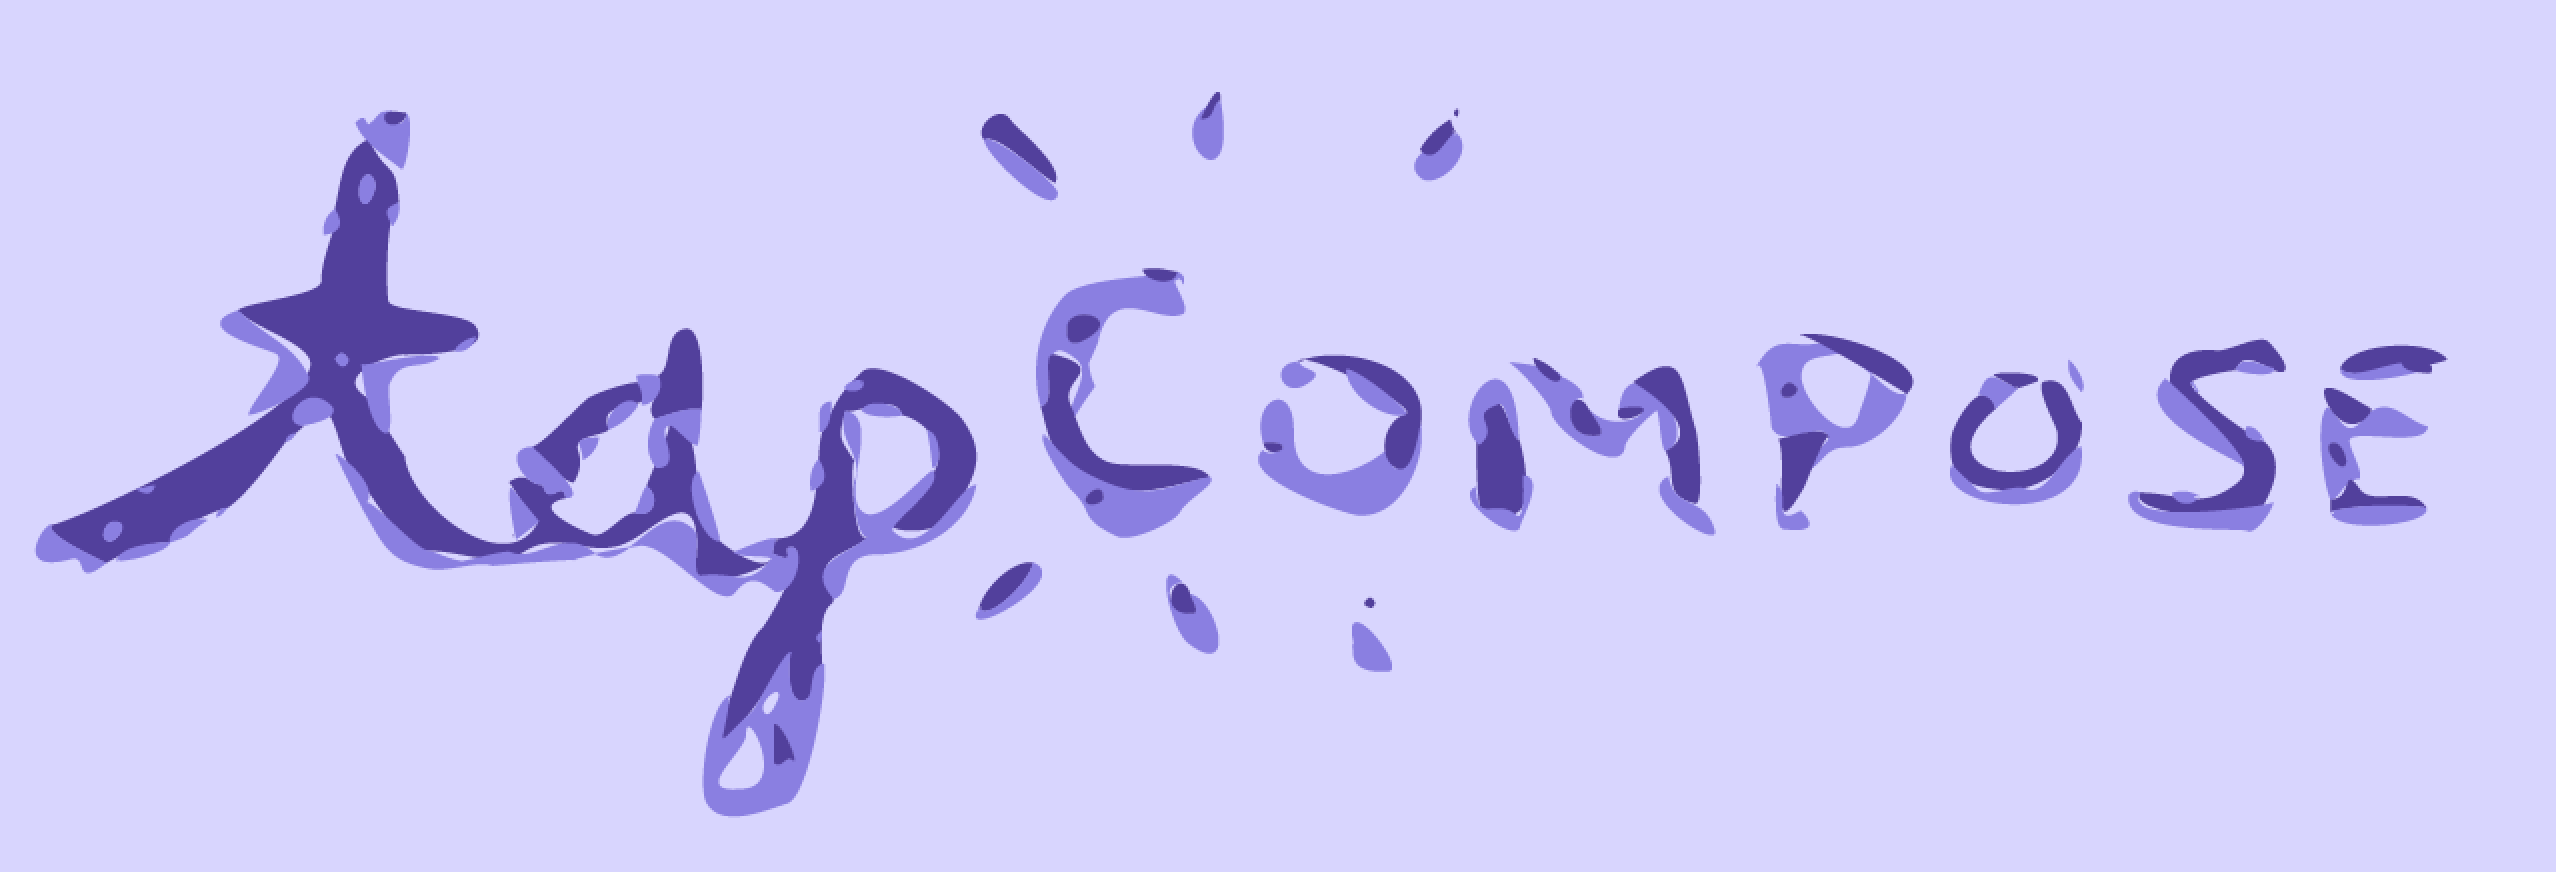 Purle background with the cursive text 'Tapcompose' and radiant lines eminating from the 'c' of 'compose.'